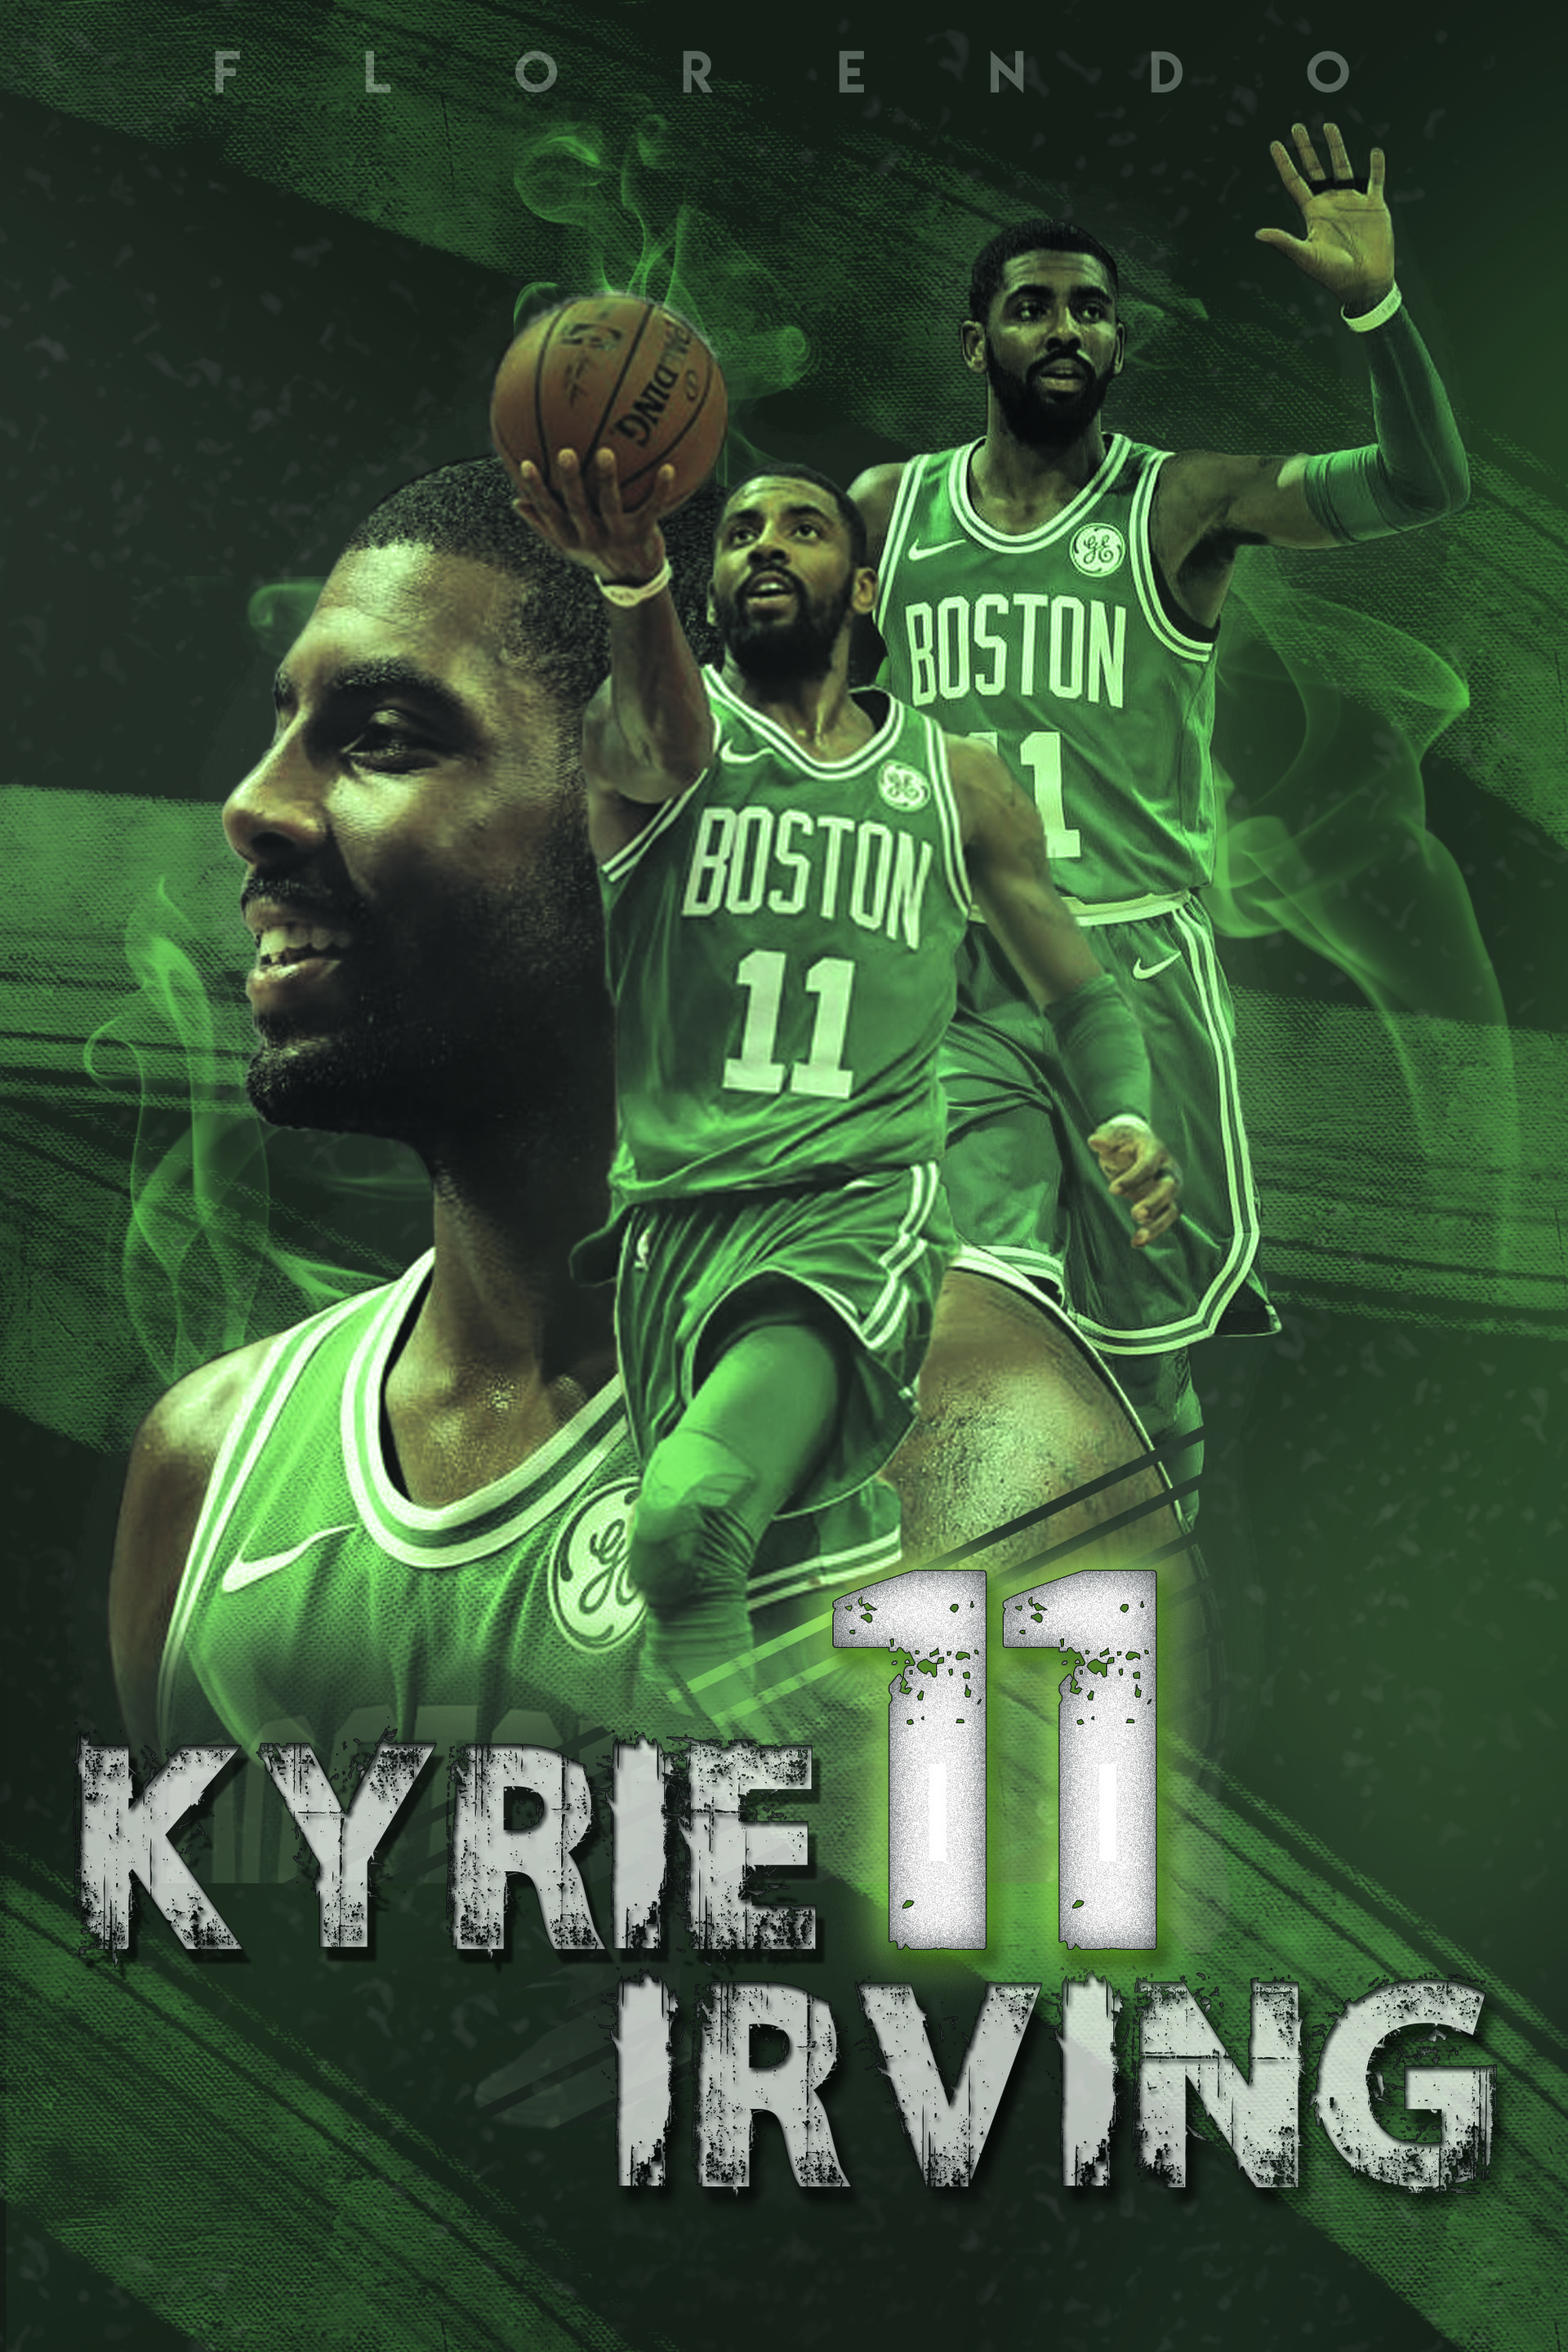 Hero Florendo - KYRIE IRVING (POSTER DESIGN)